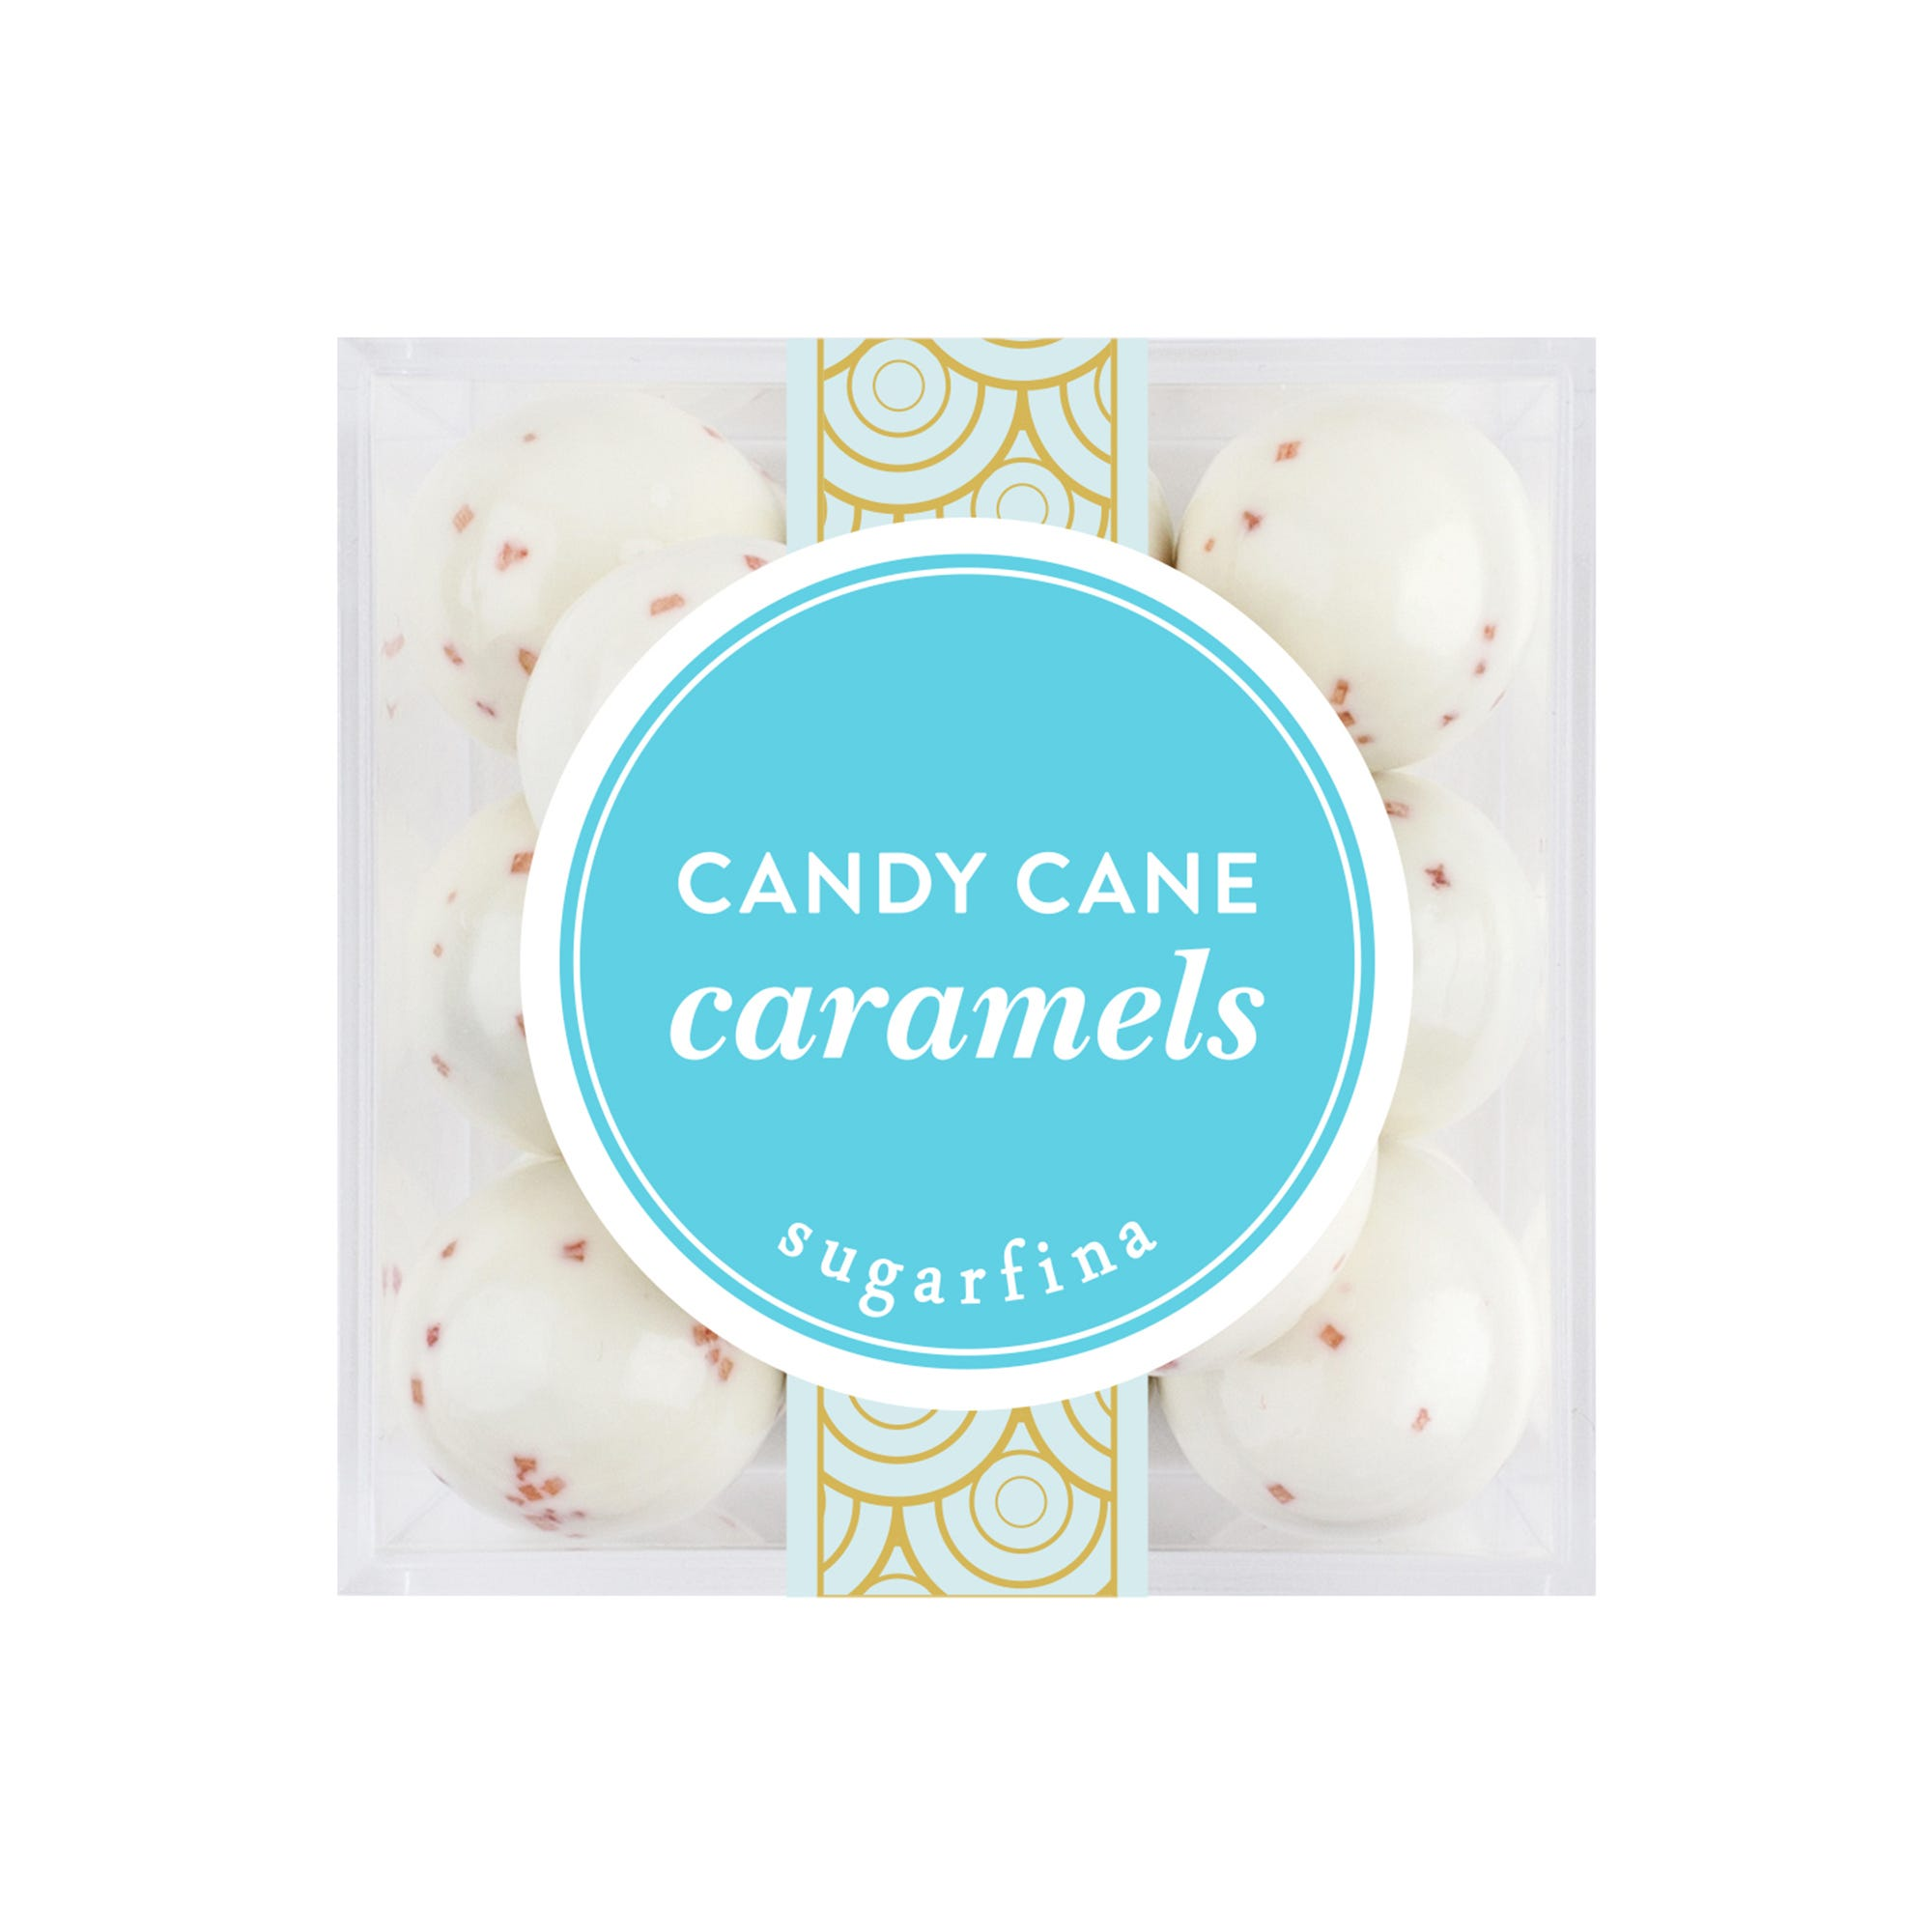 Candy Cane Caramels - Small